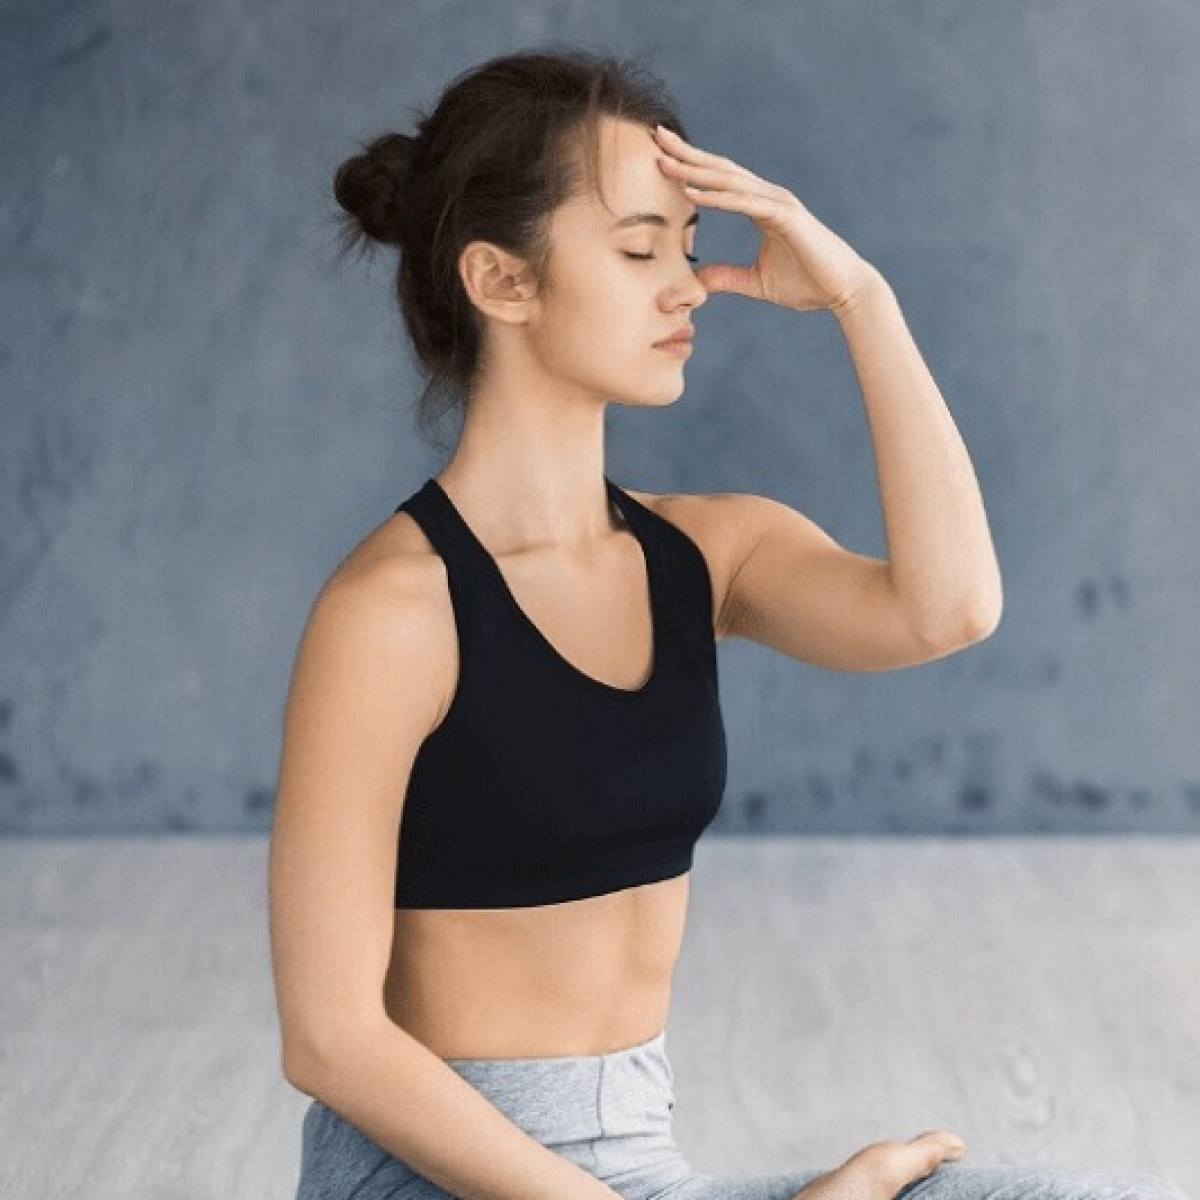 From nasal wash to guarding against pollutants: Here are some effective hacks to healthy breathing